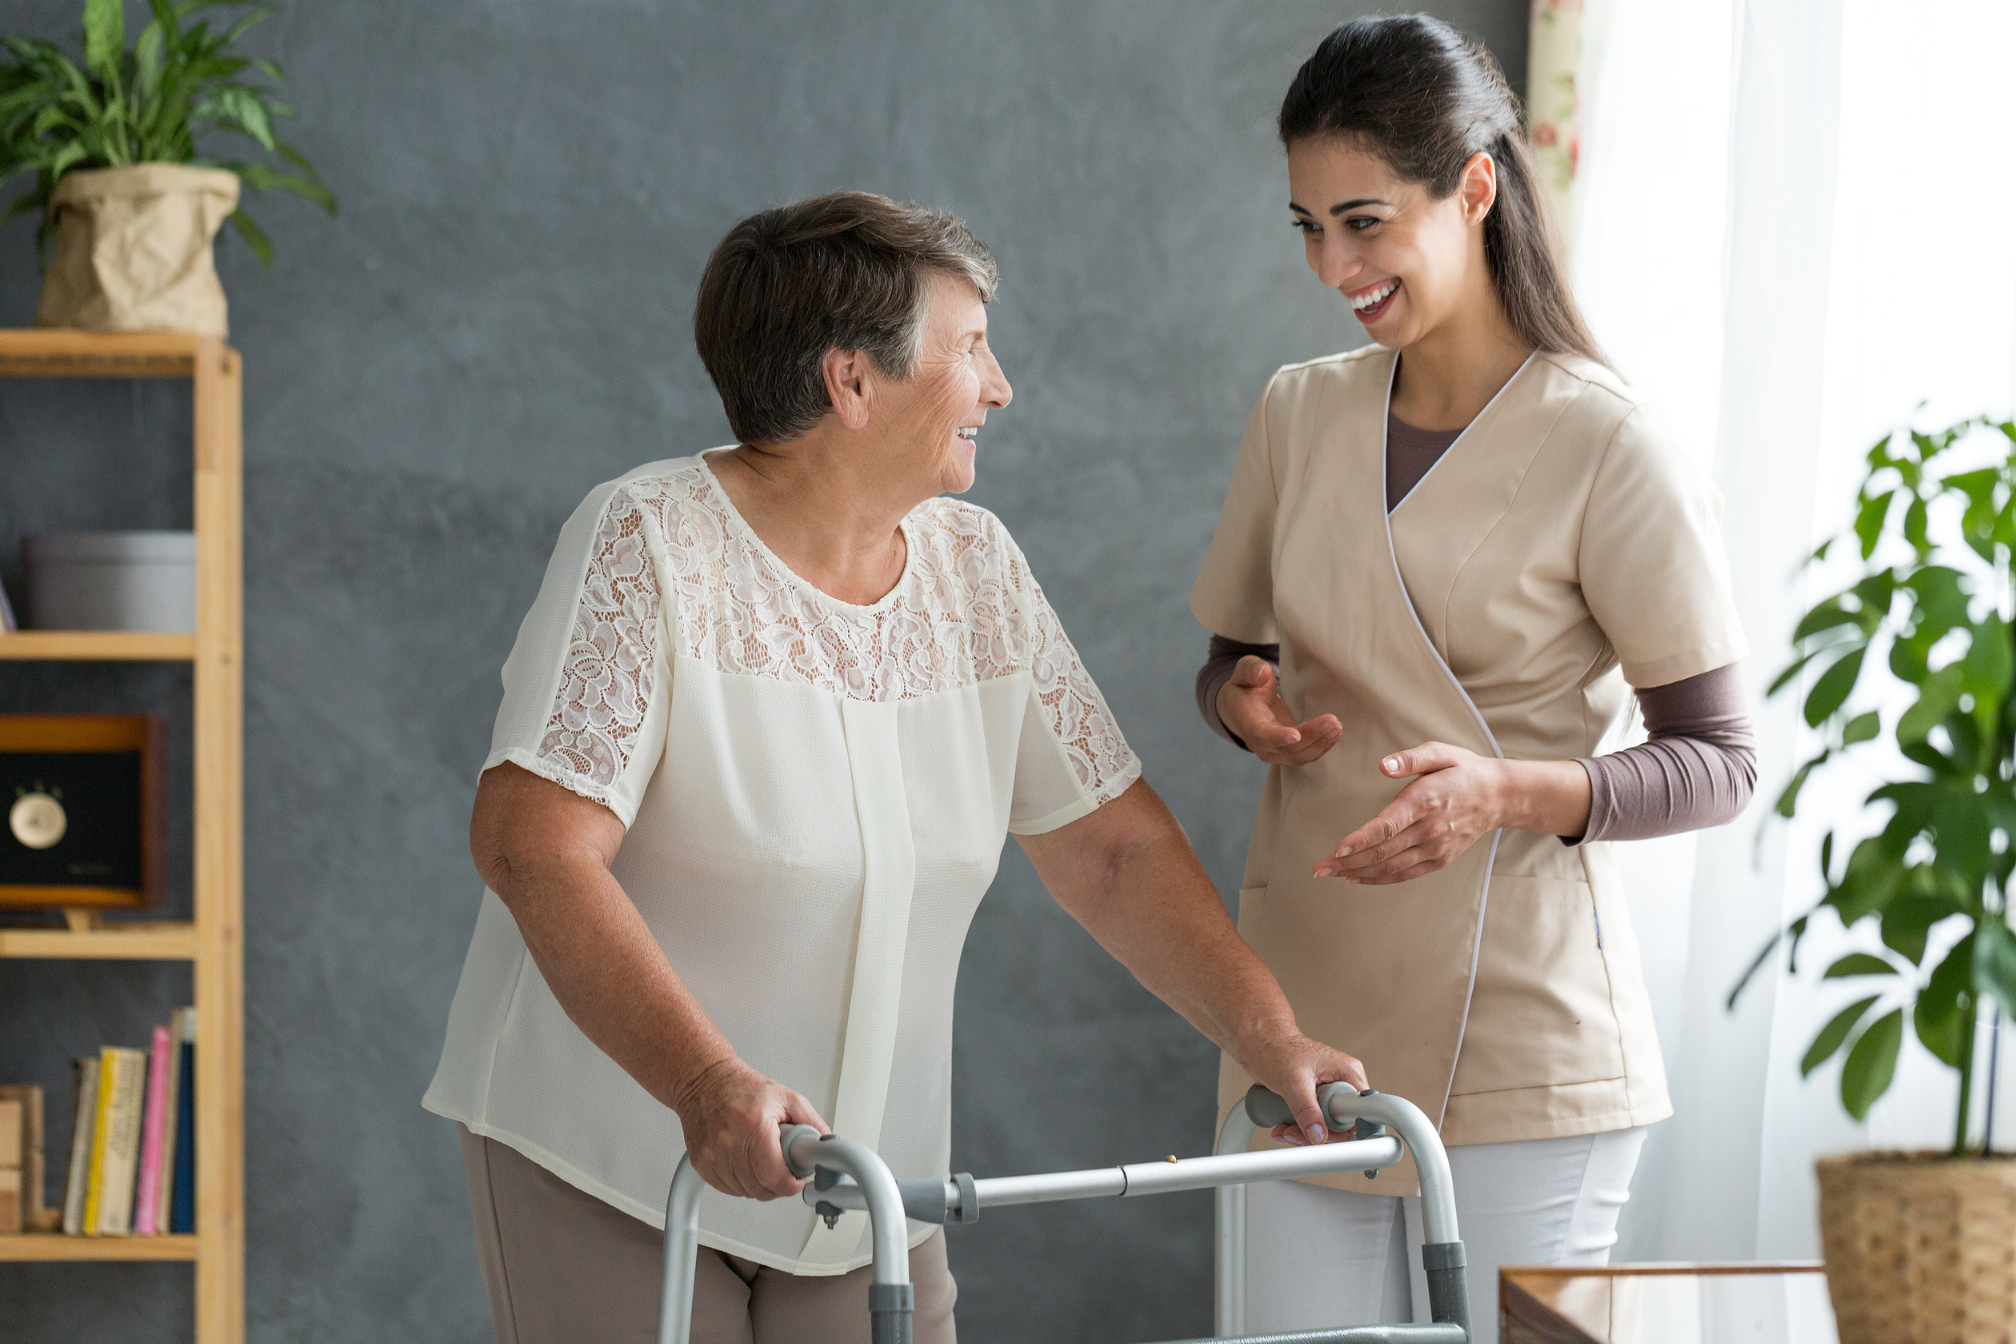 Find out what you can expect when receiving hospice care at home. Learn about the care team, what it provides, and how it works with the patient and their loved ones to ensure the best possible expereince - it's care your way!